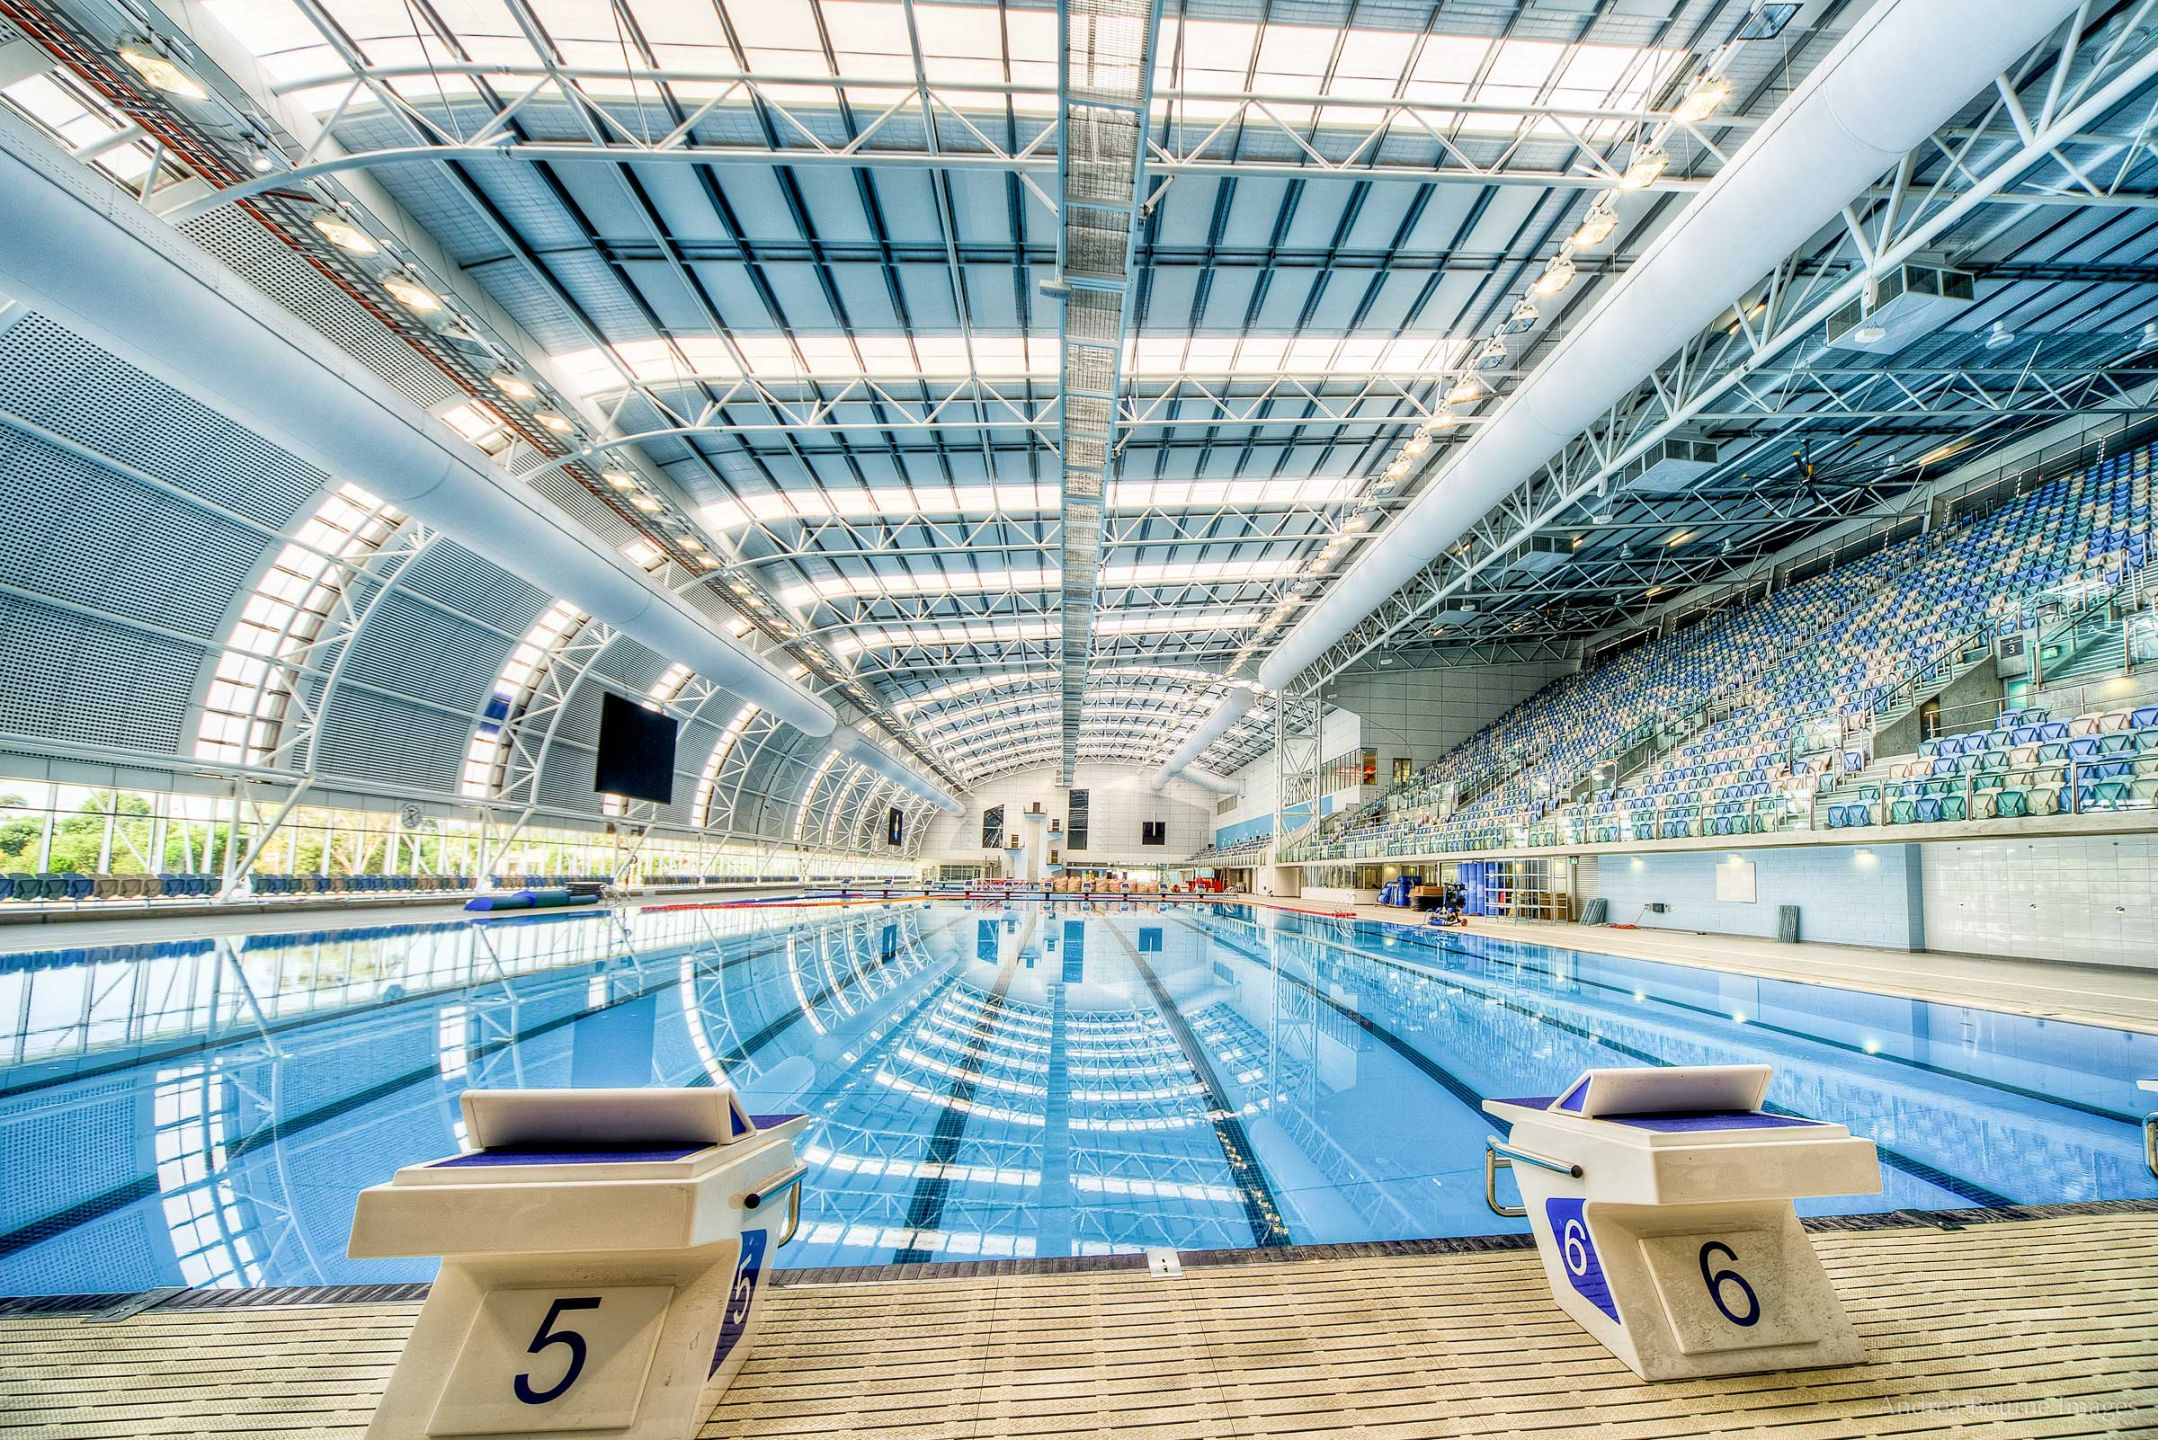 olympic swimming pool 2016 australian olympic trial race previews who to watch swimming - Olympic Swimming Pool 2015